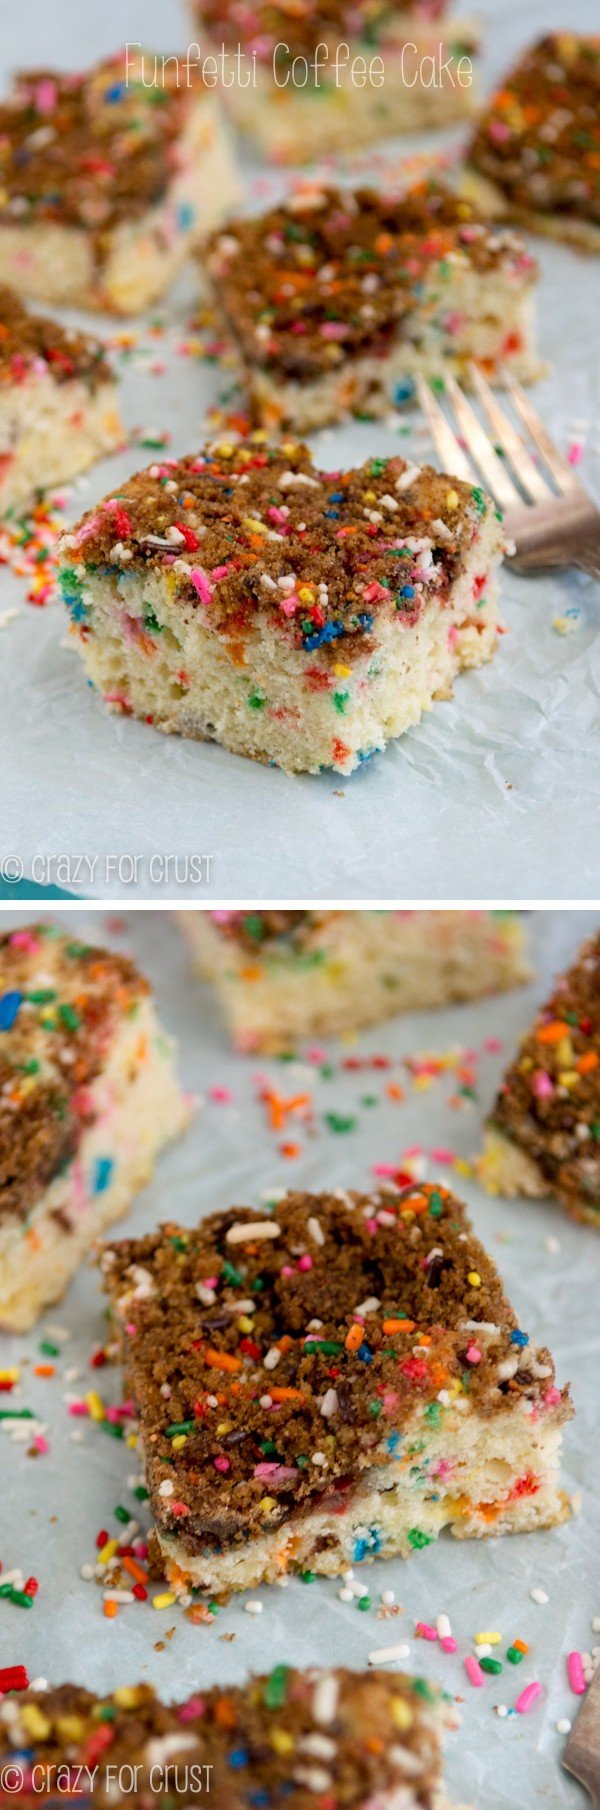 Funfetti Coffee Cake: a streusel coffee cake that tastes like funfetti cake!